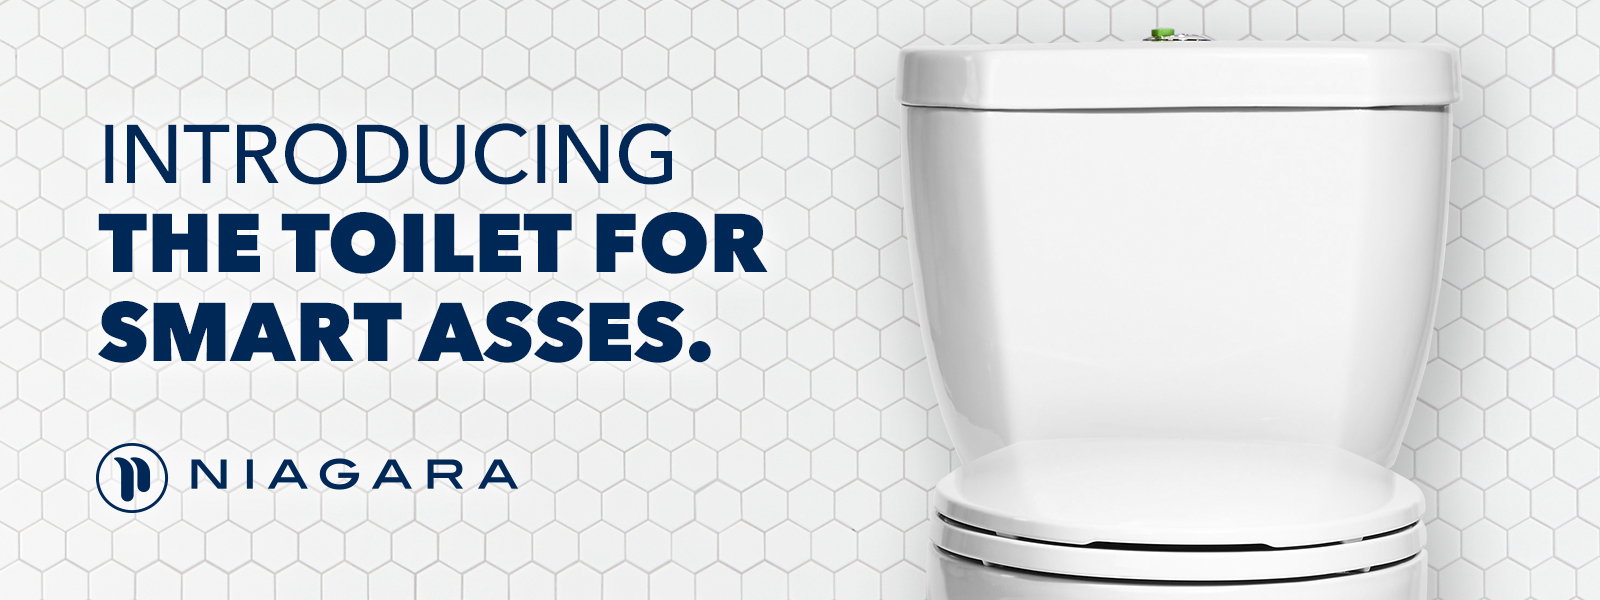 Banner image of a toilet for Niagara's campaign